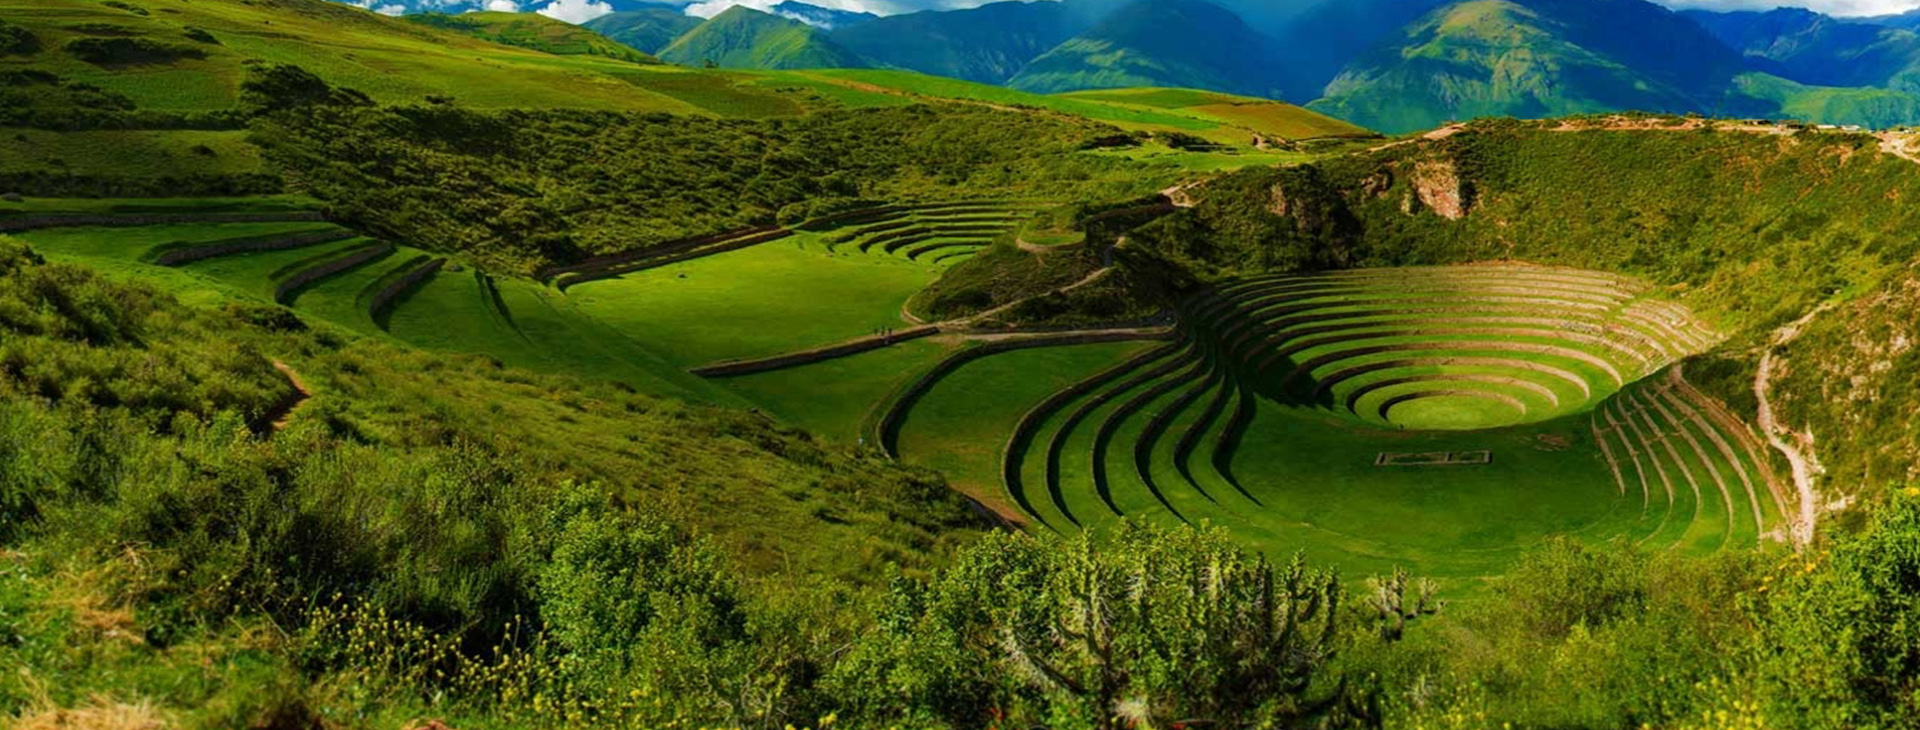 Tours Cusco Machu Picchu Full 5days - TOURS PERU MACHU PICCHU